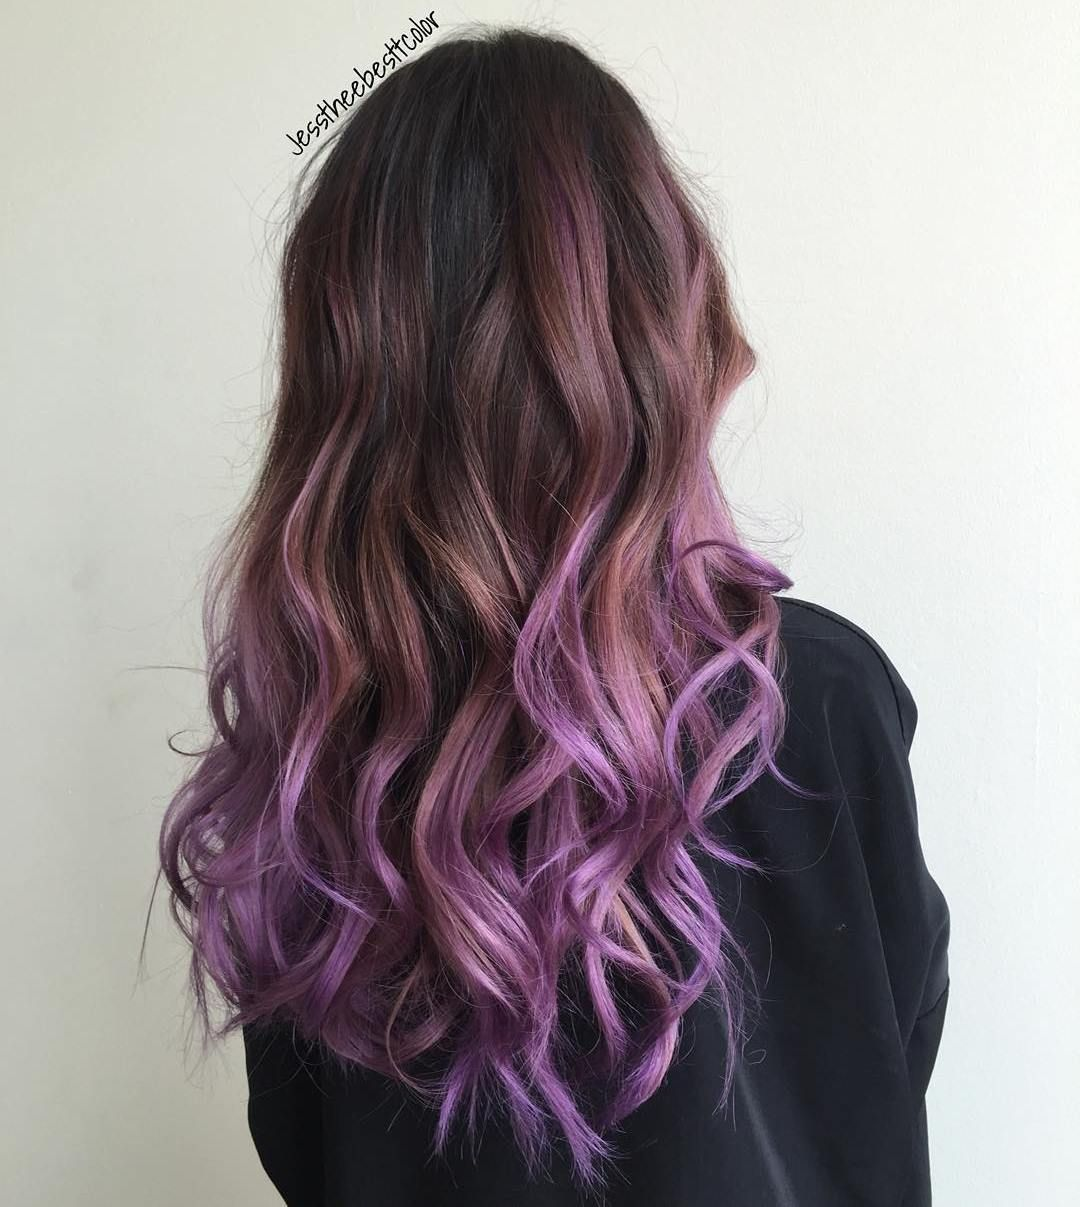 60 Best Ombre Hair Color Ideas for Blond, Brown, Red and